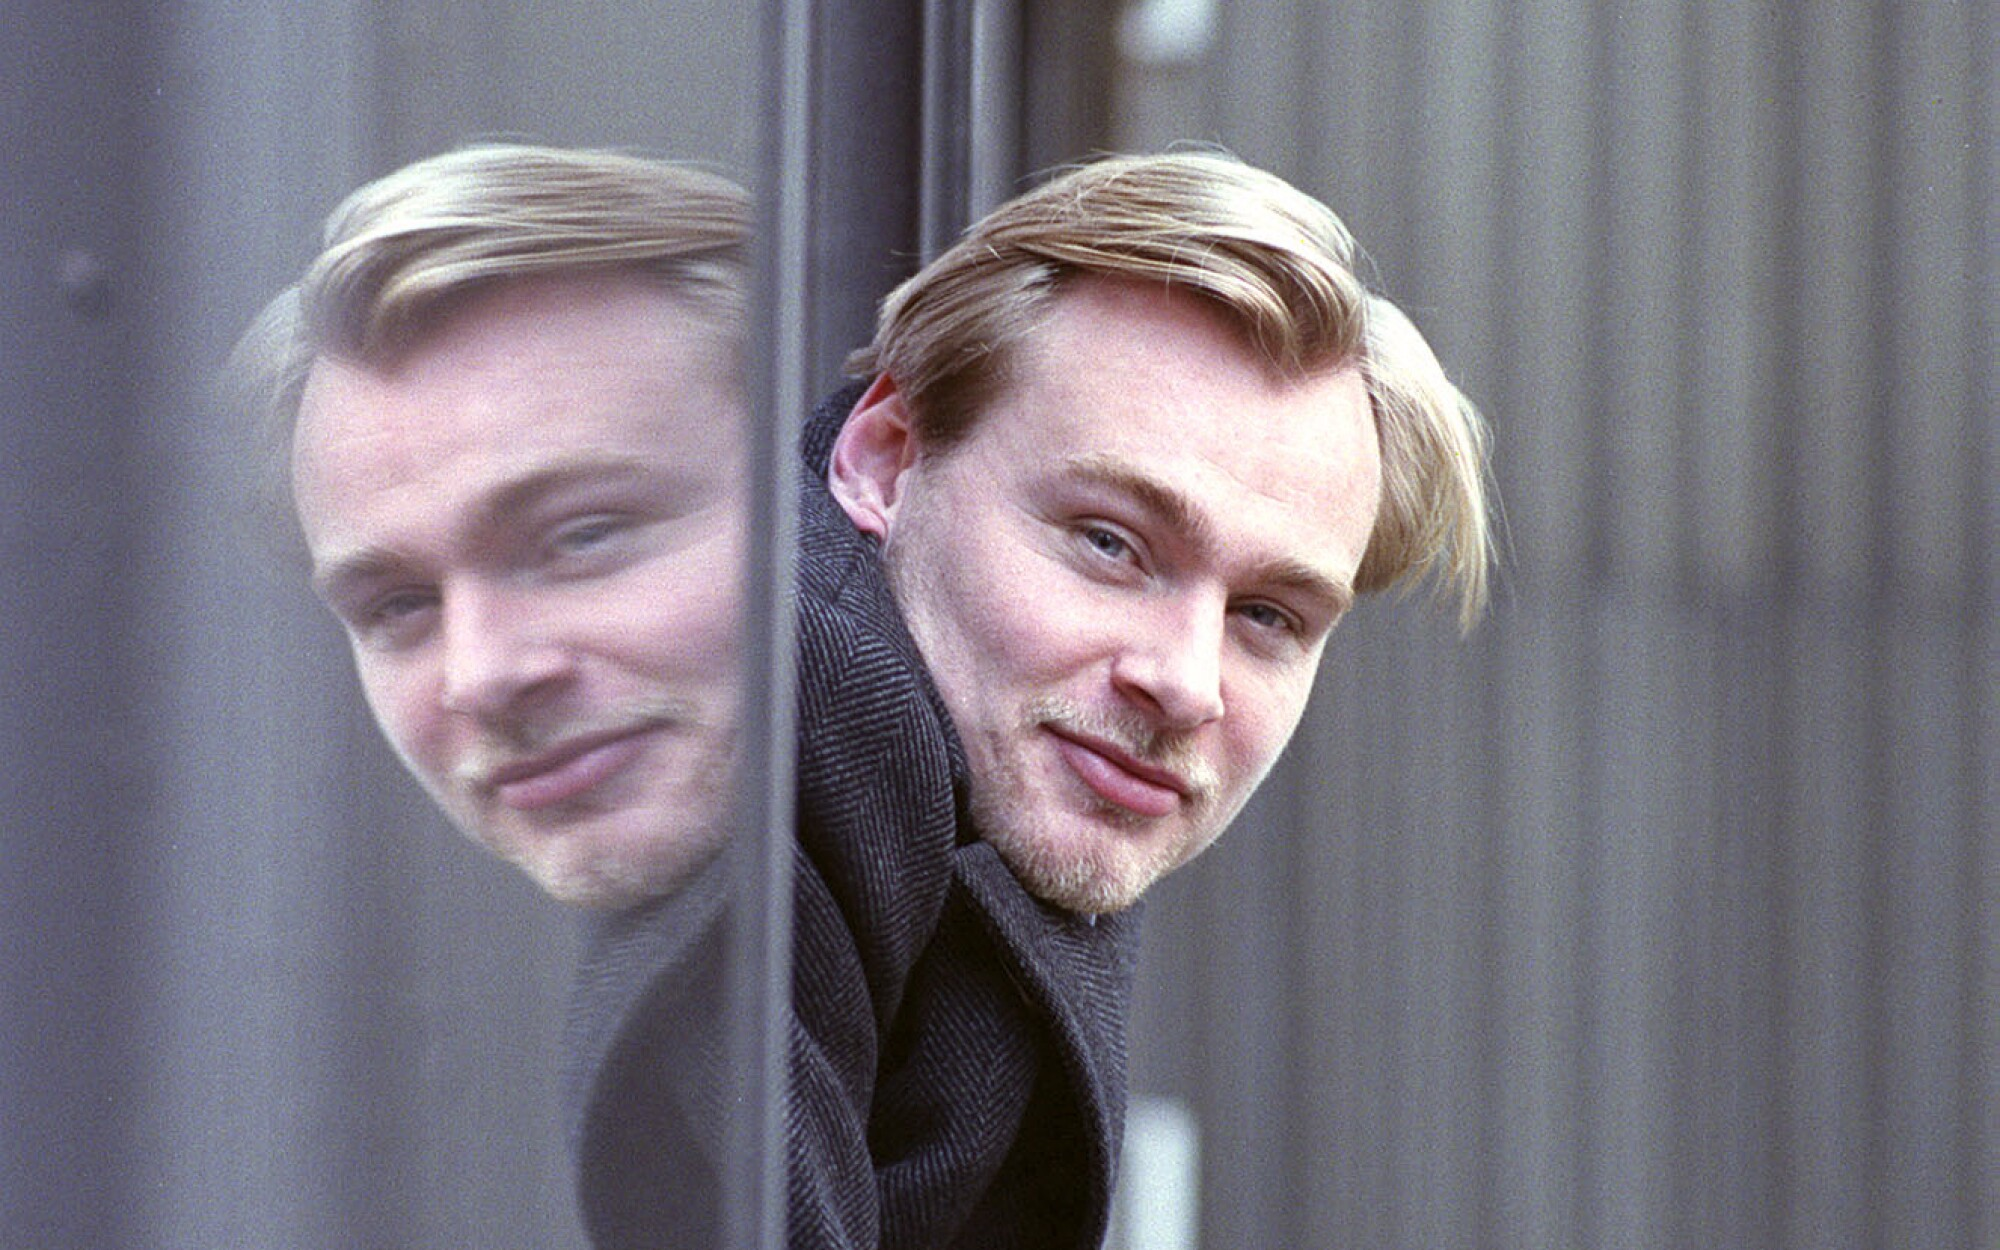 Film director Christopher Nolan.